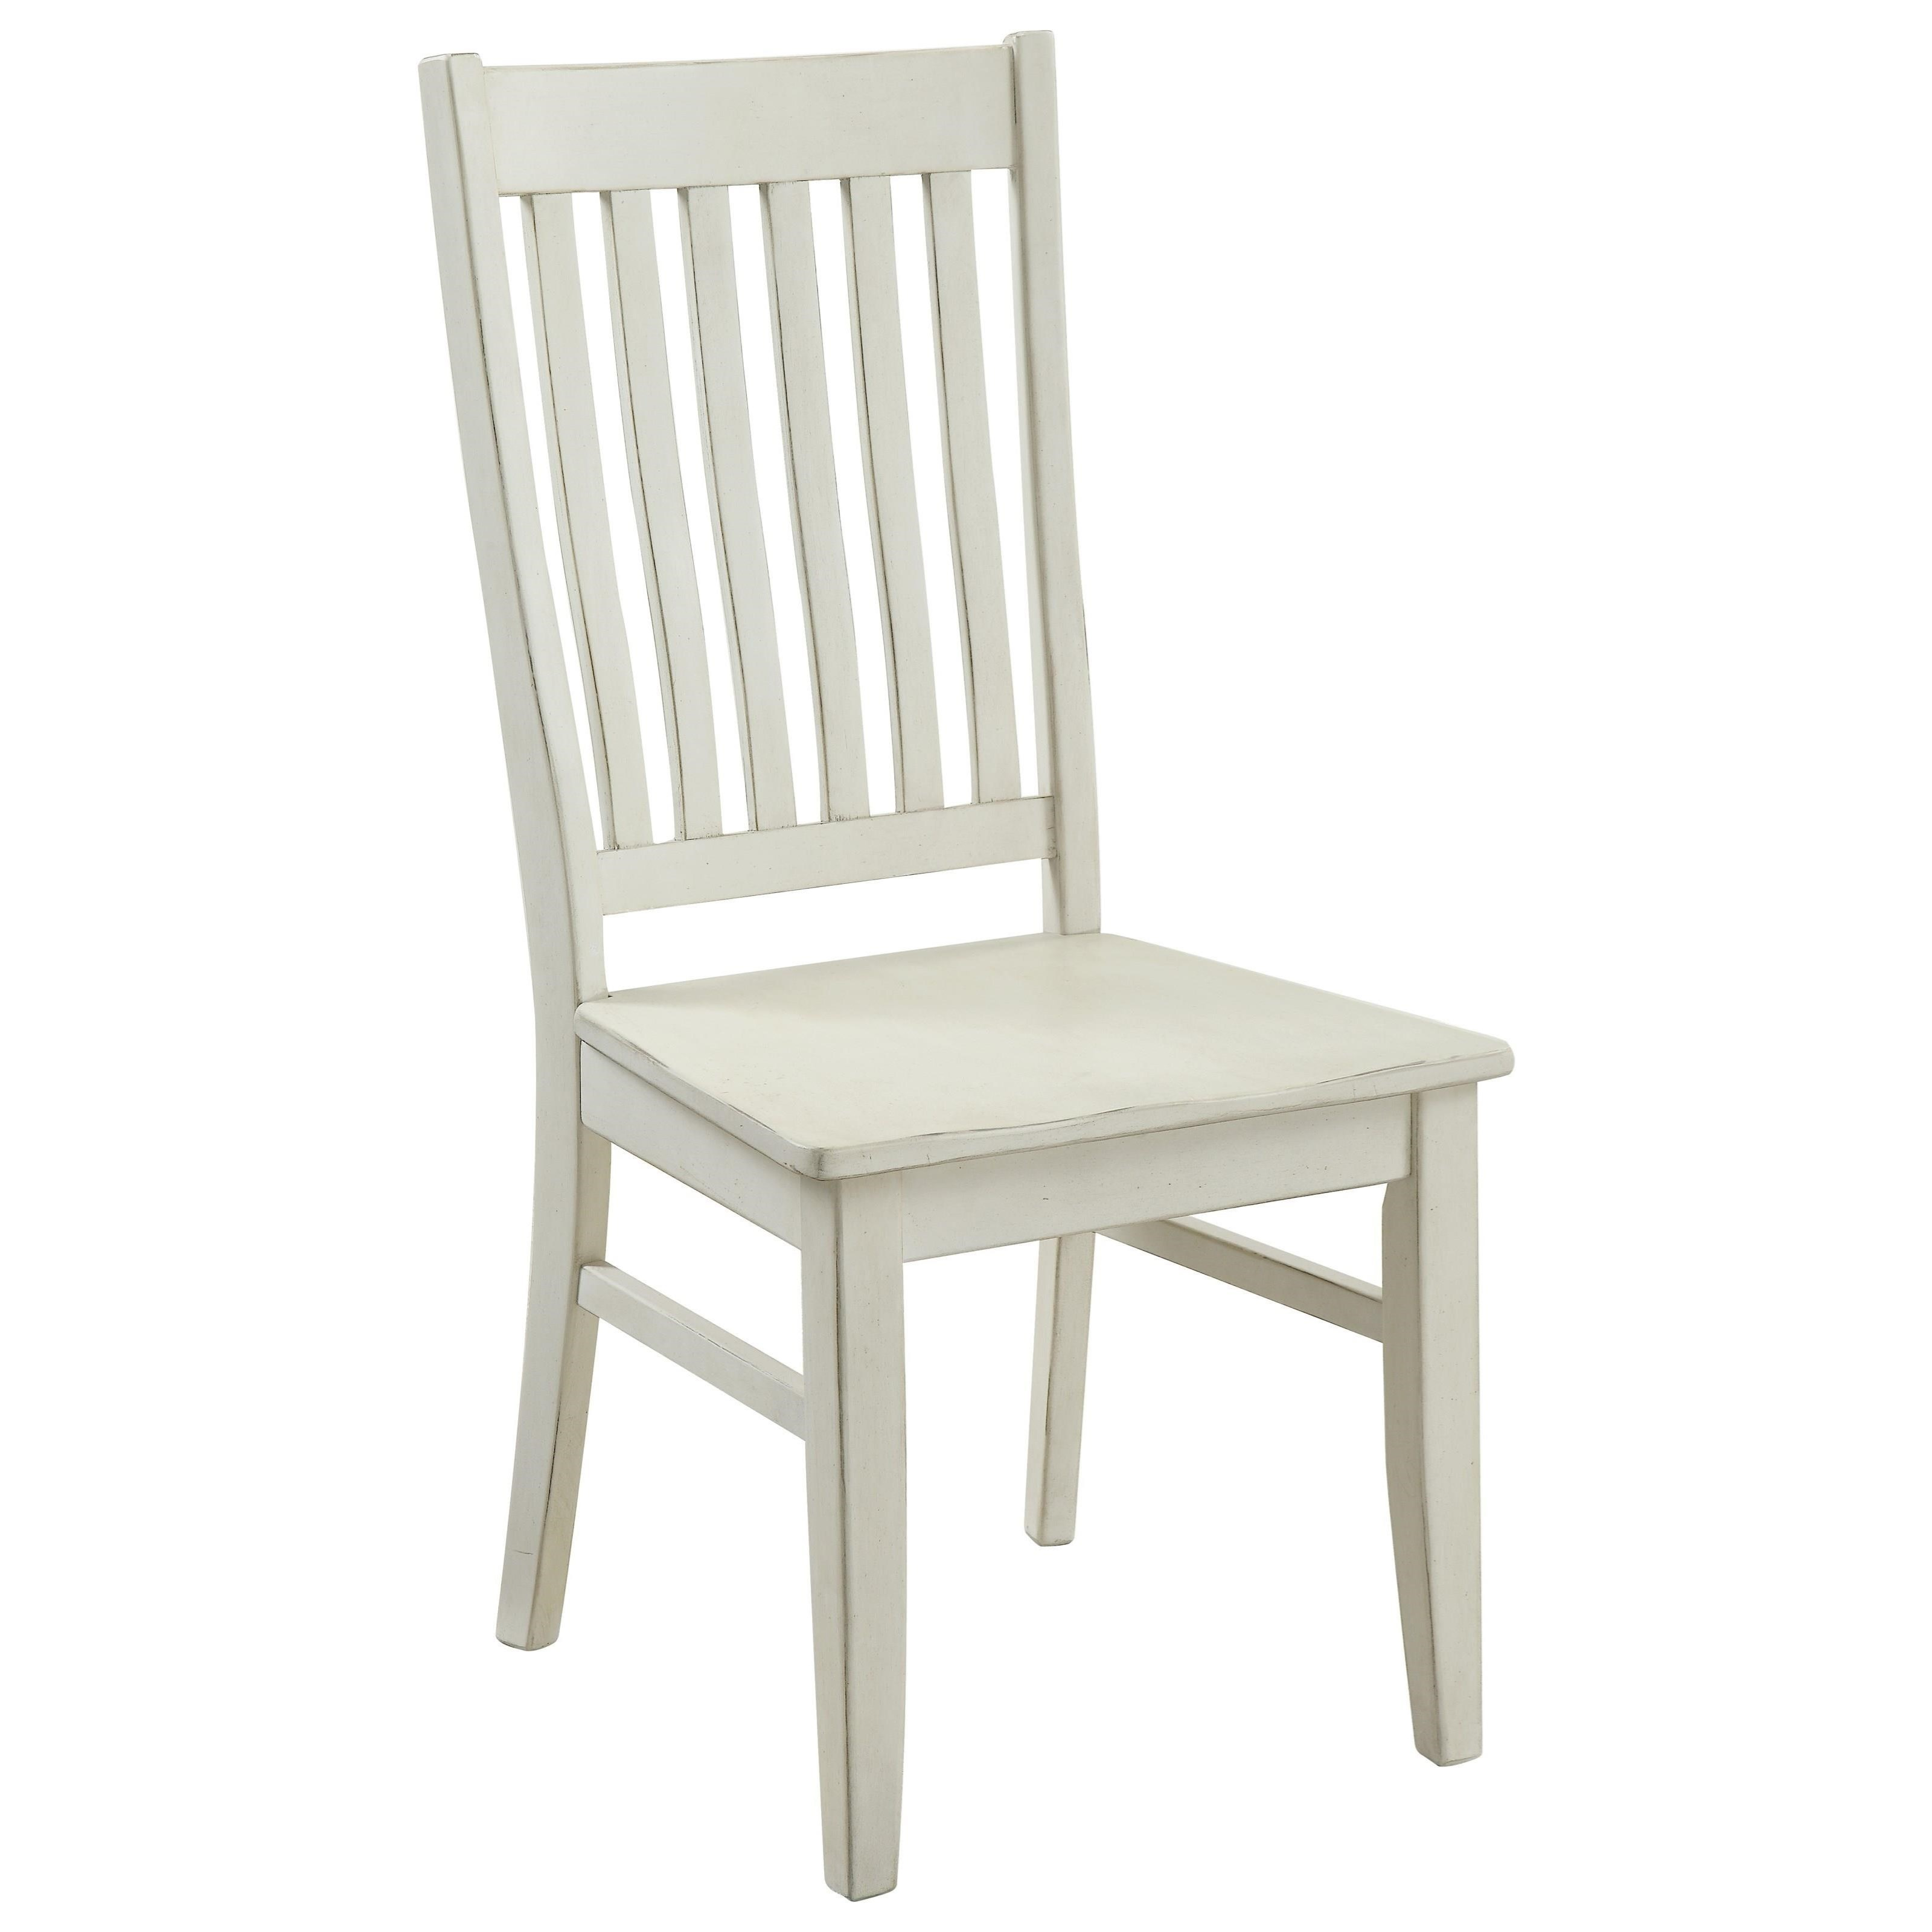 Orchard Park Dining Chair